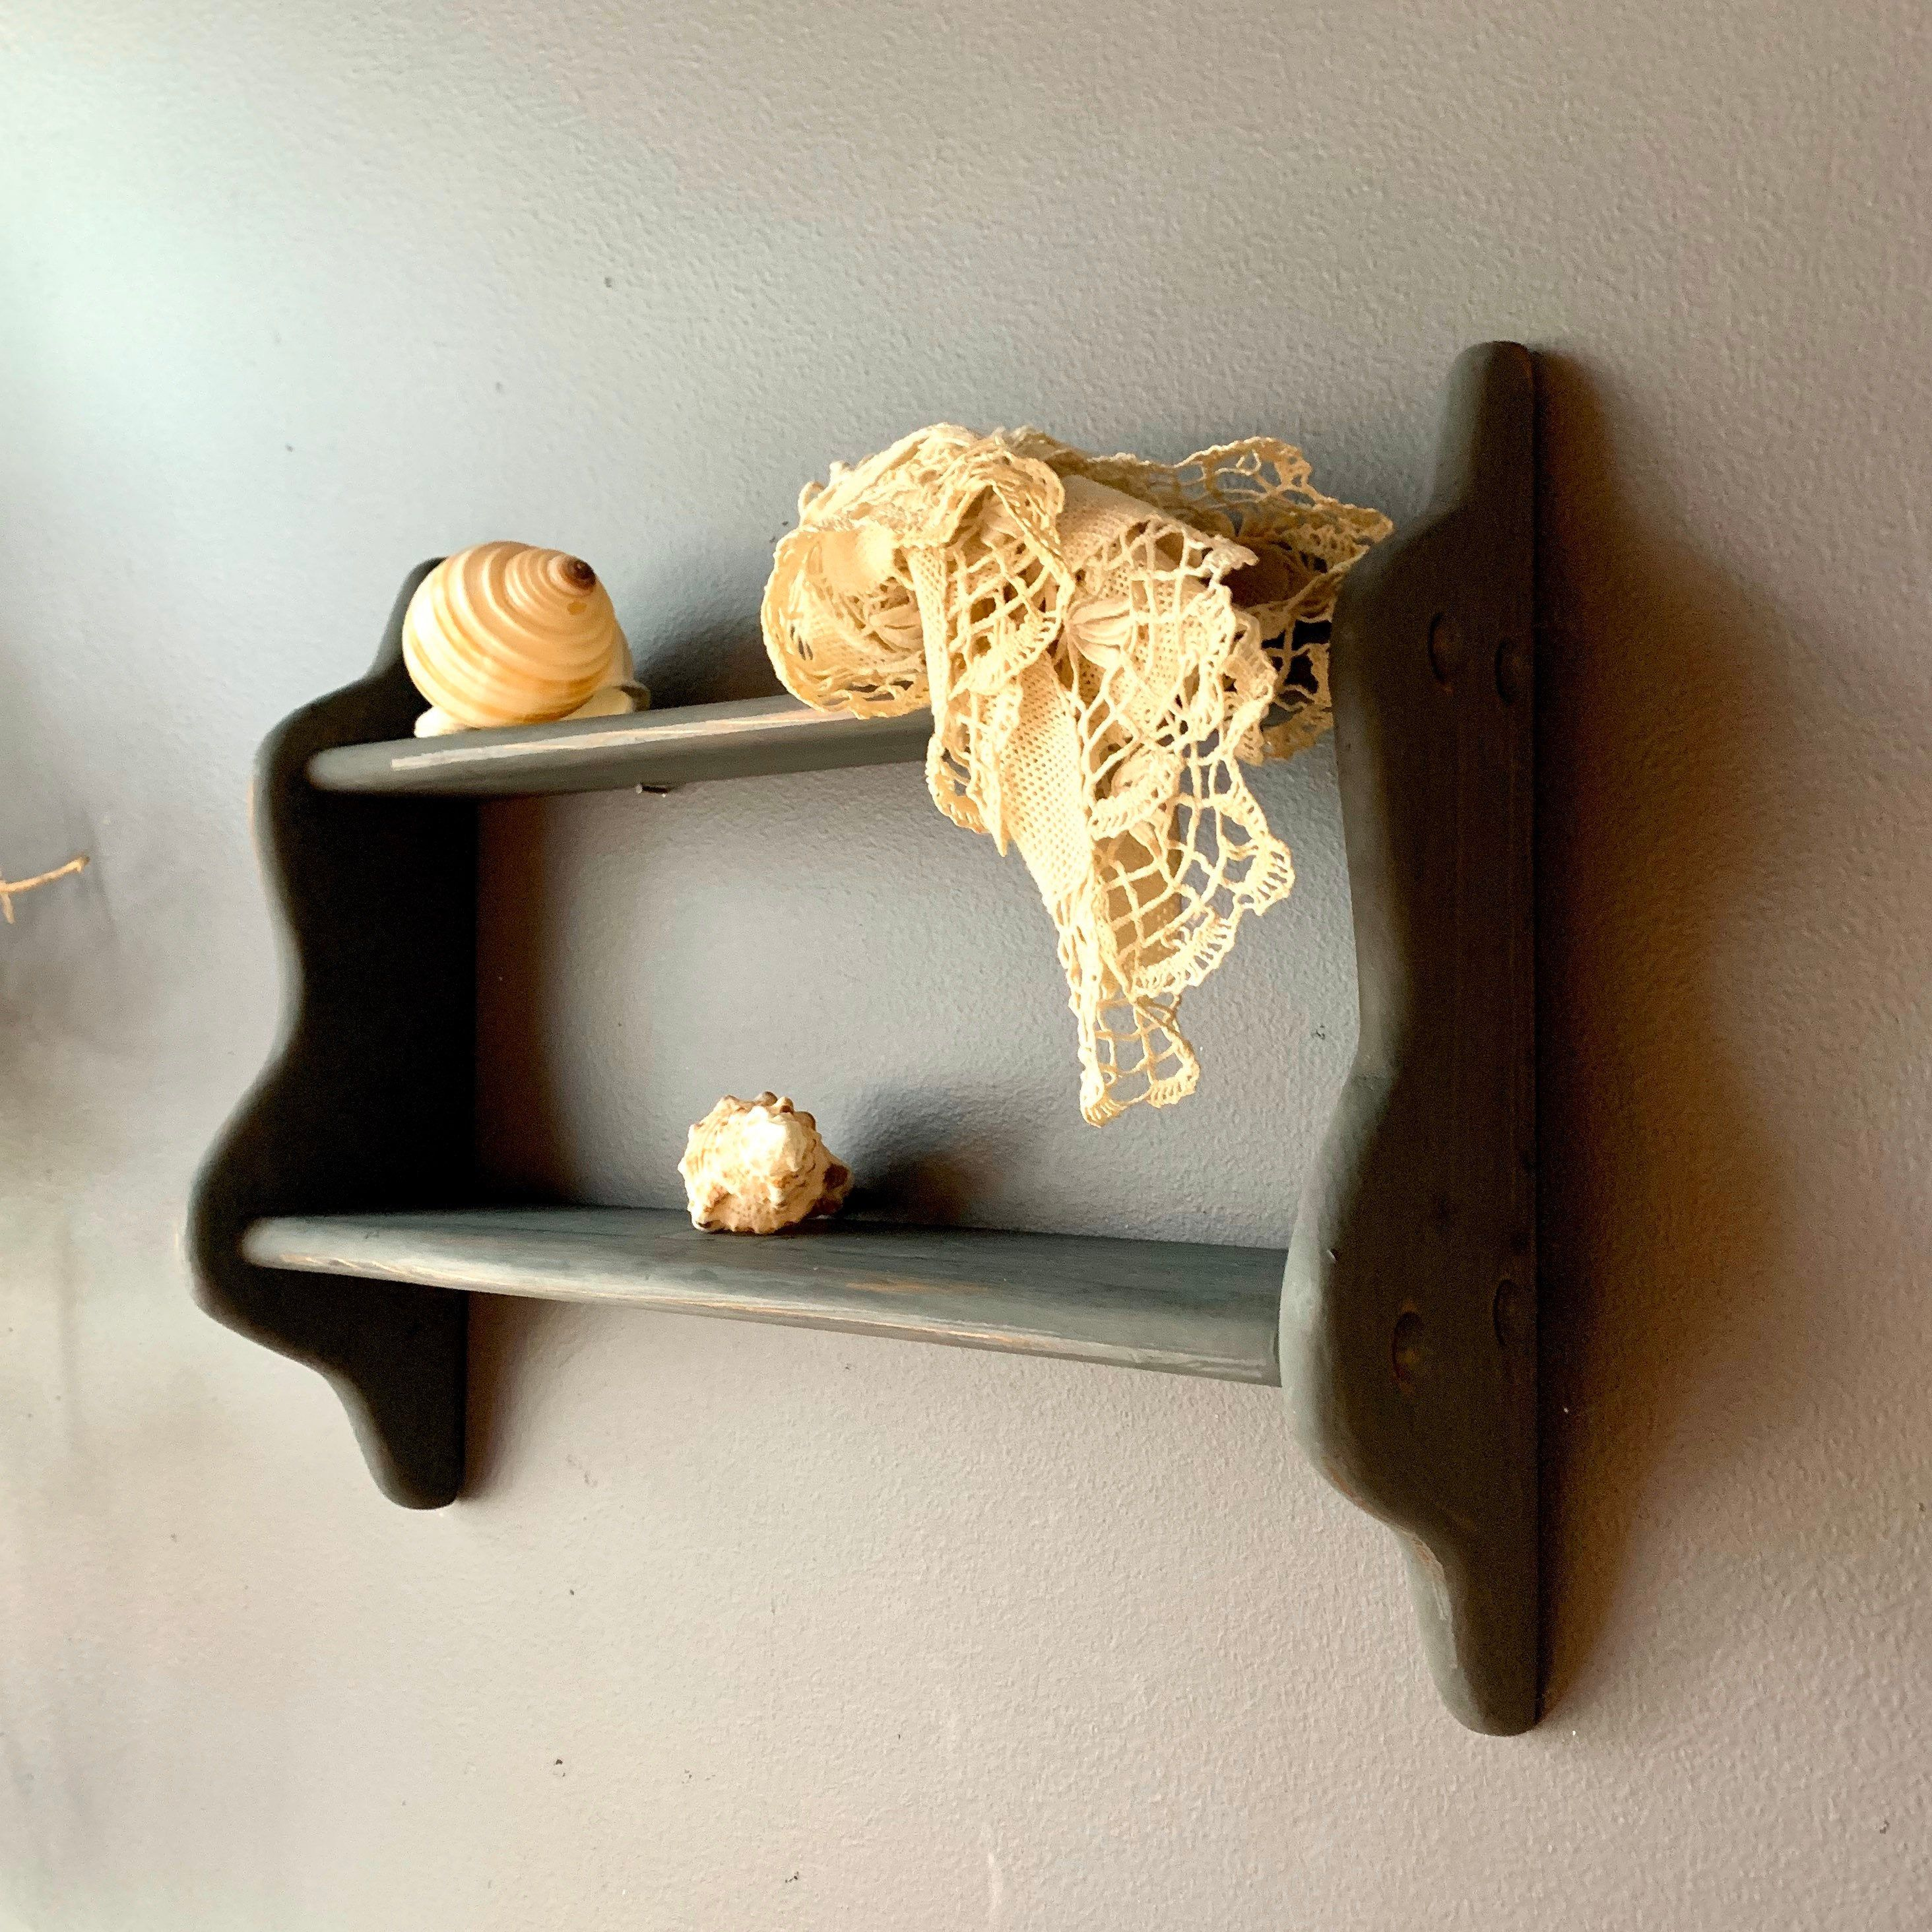 Very Small Wooden Shelf Of 2 Tiers Painted In Matte Black Etsy In 2020 Small Wooden Shelf Wooden Shelves Wood Shelves